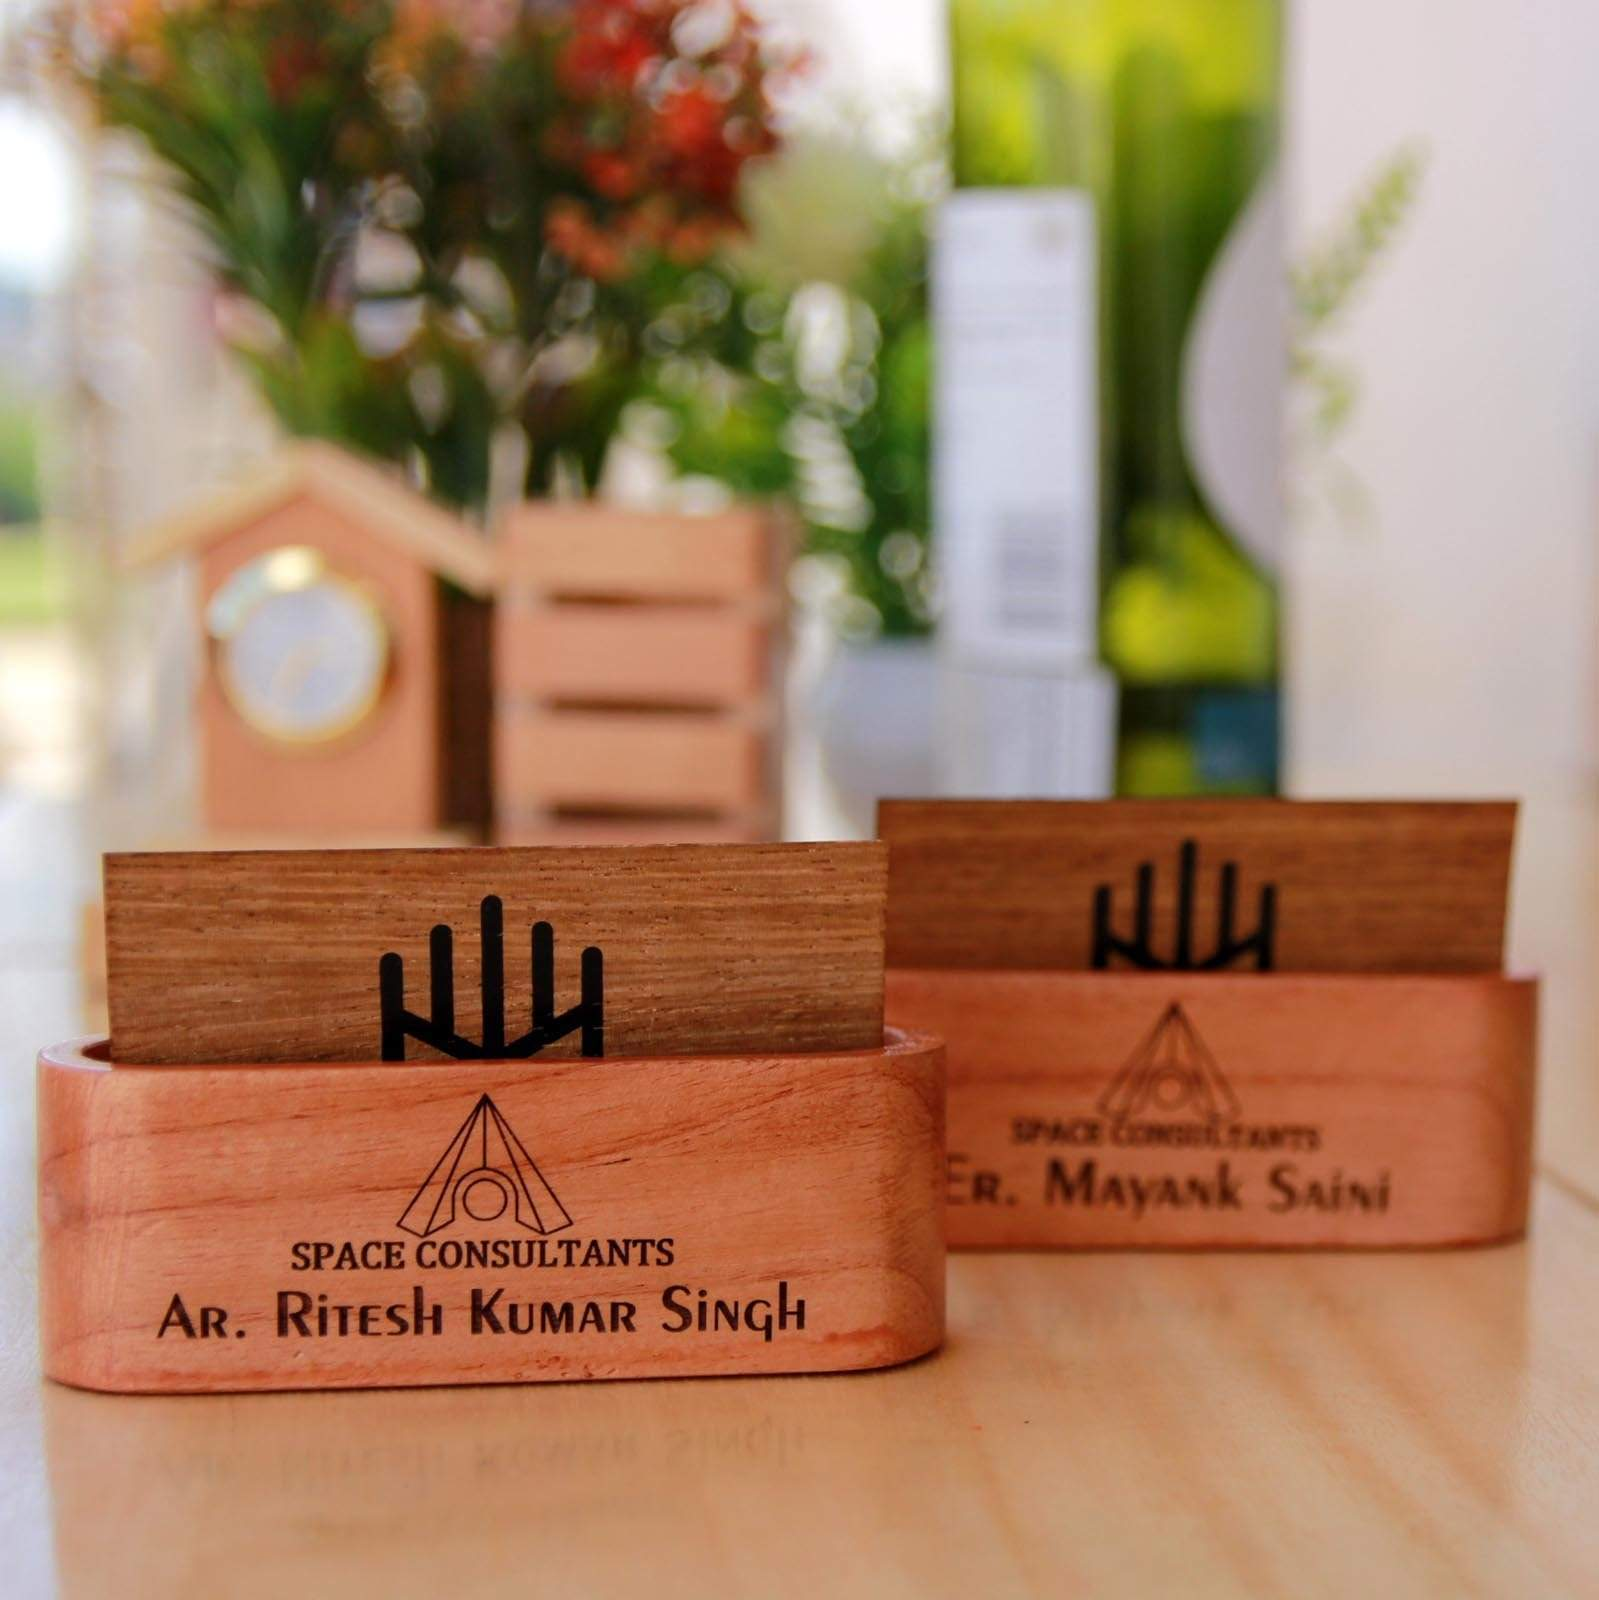 Wooden Business Card Holder - This Wooden Visiting Card Holder Makes Great Office Desk Decor - These Office Accessories Are Great Gifts For Colleagues And Employees. This Personalized Business Card Holder Can Be Engraved With Name.